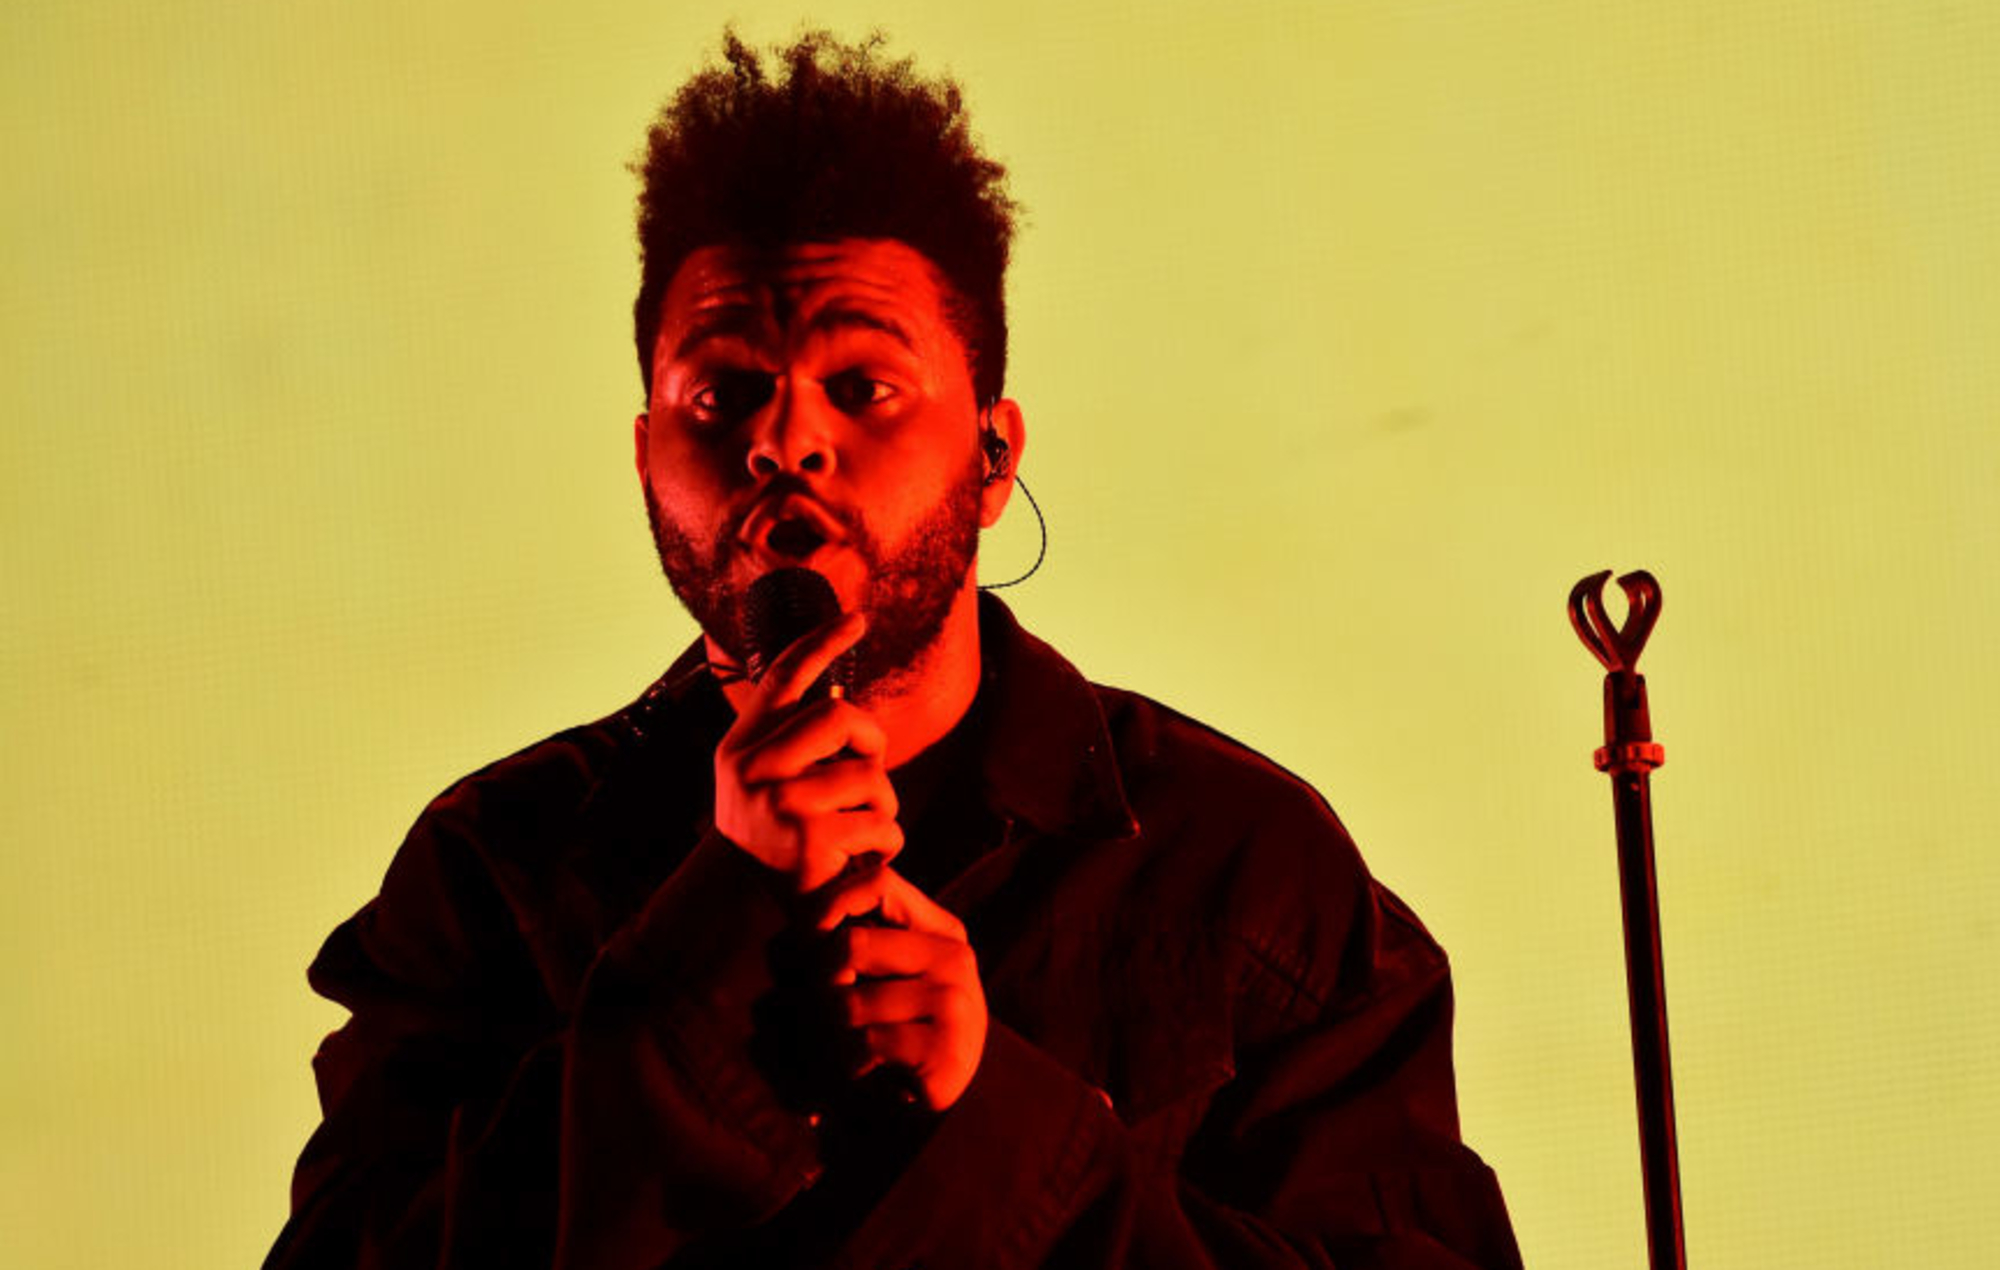 The Weeknd confirmed for NFL Tremendous Bowl halftime present